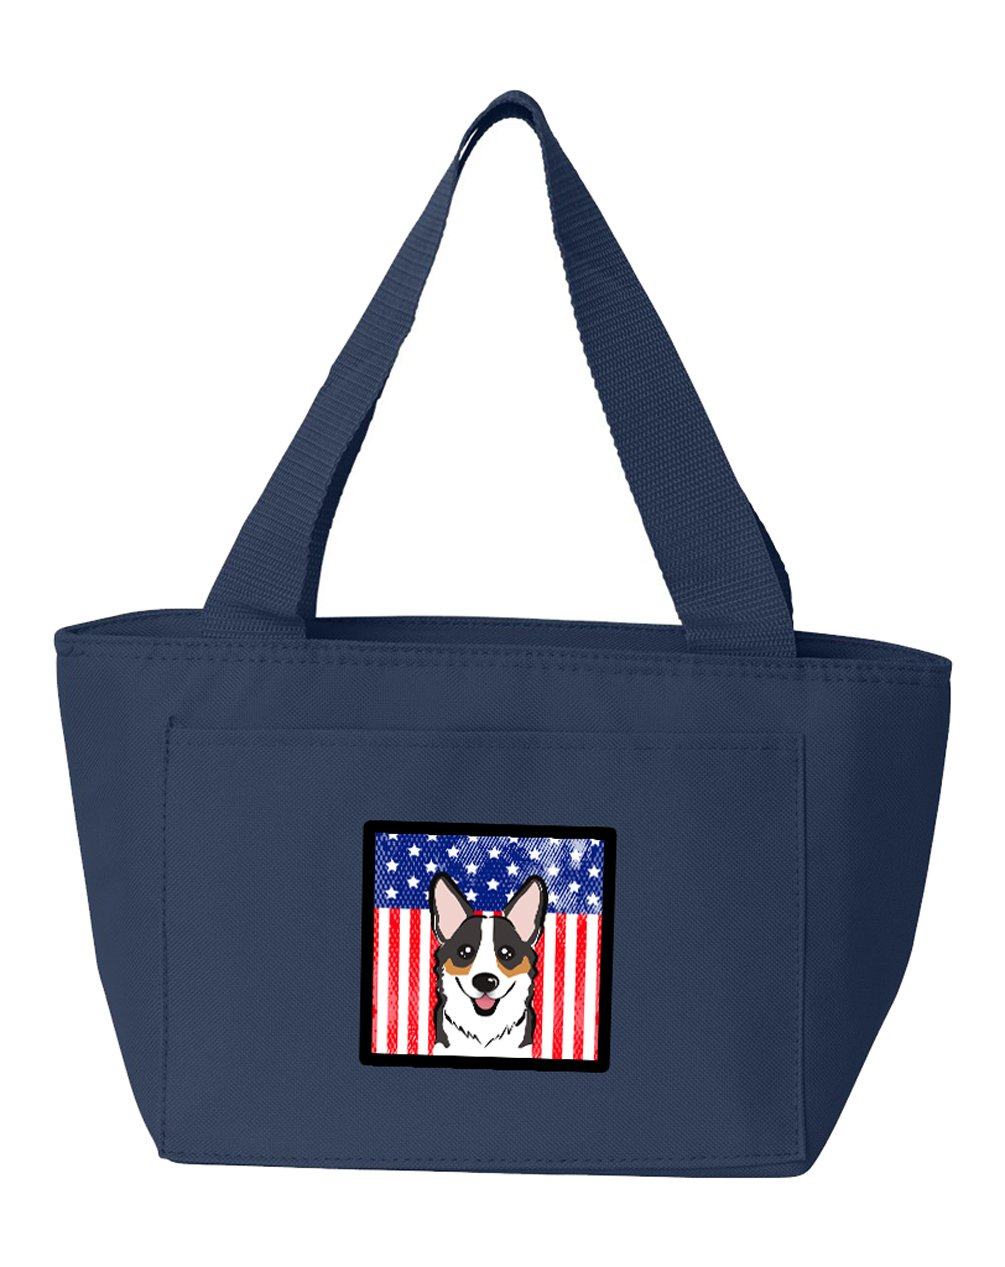 American Flag and Tricolor Corgi Lunch Bag BB2185NA-8808 by Caroline's Treasures